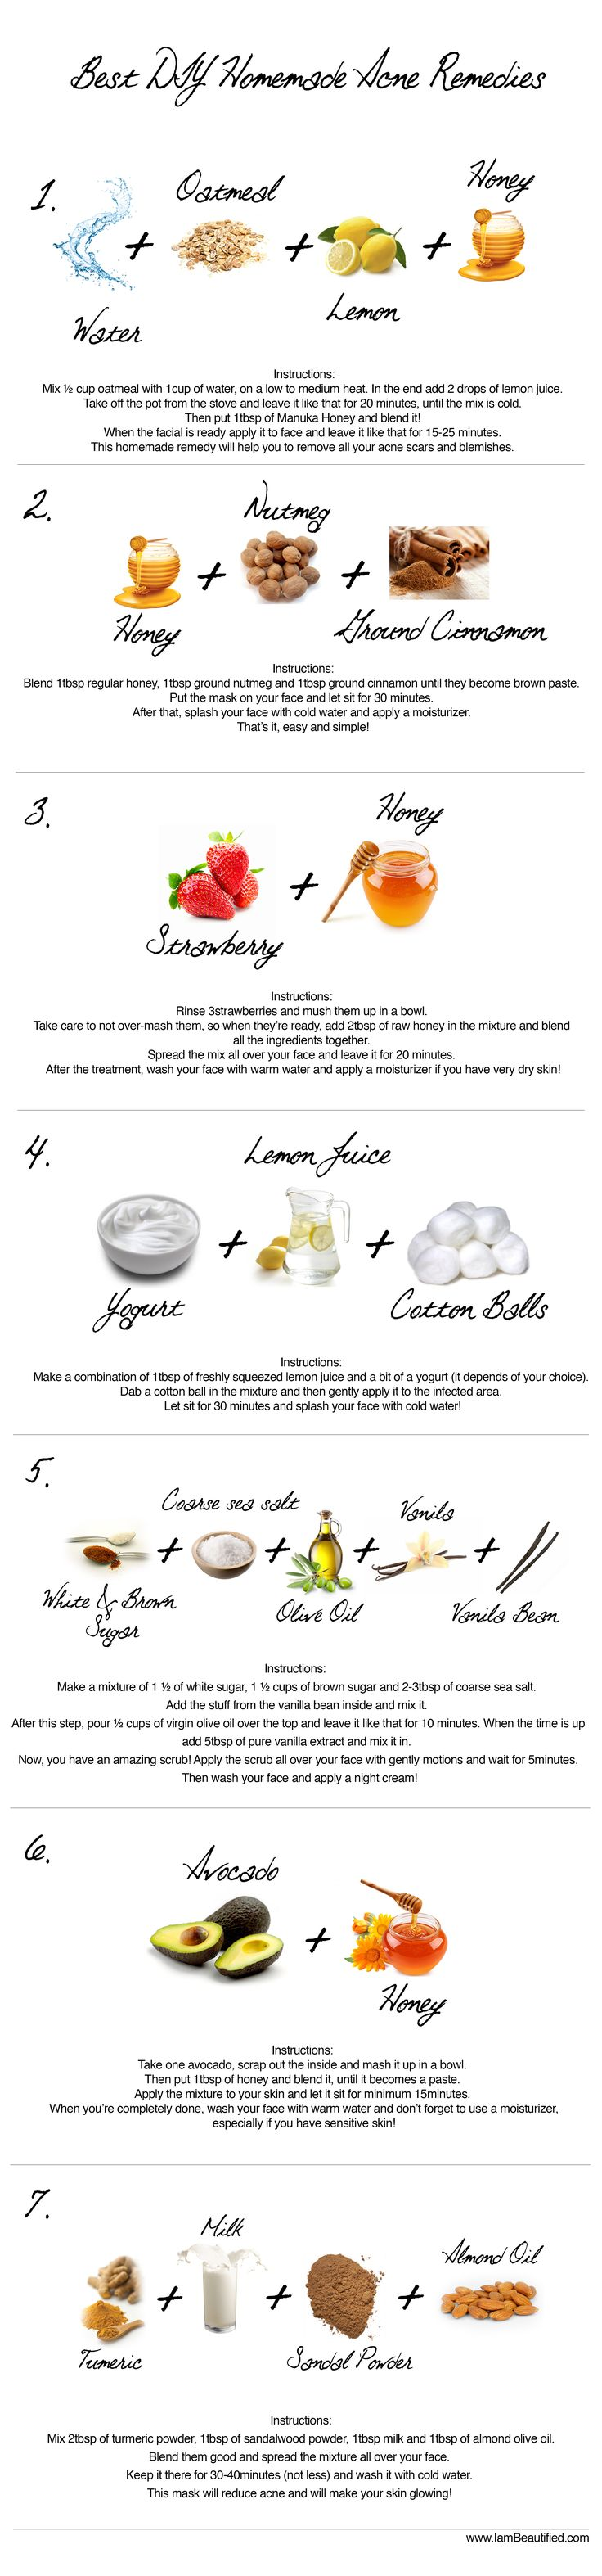 Best DIY Homemade Acne Remedies - Read the intro for the InfoGram first.